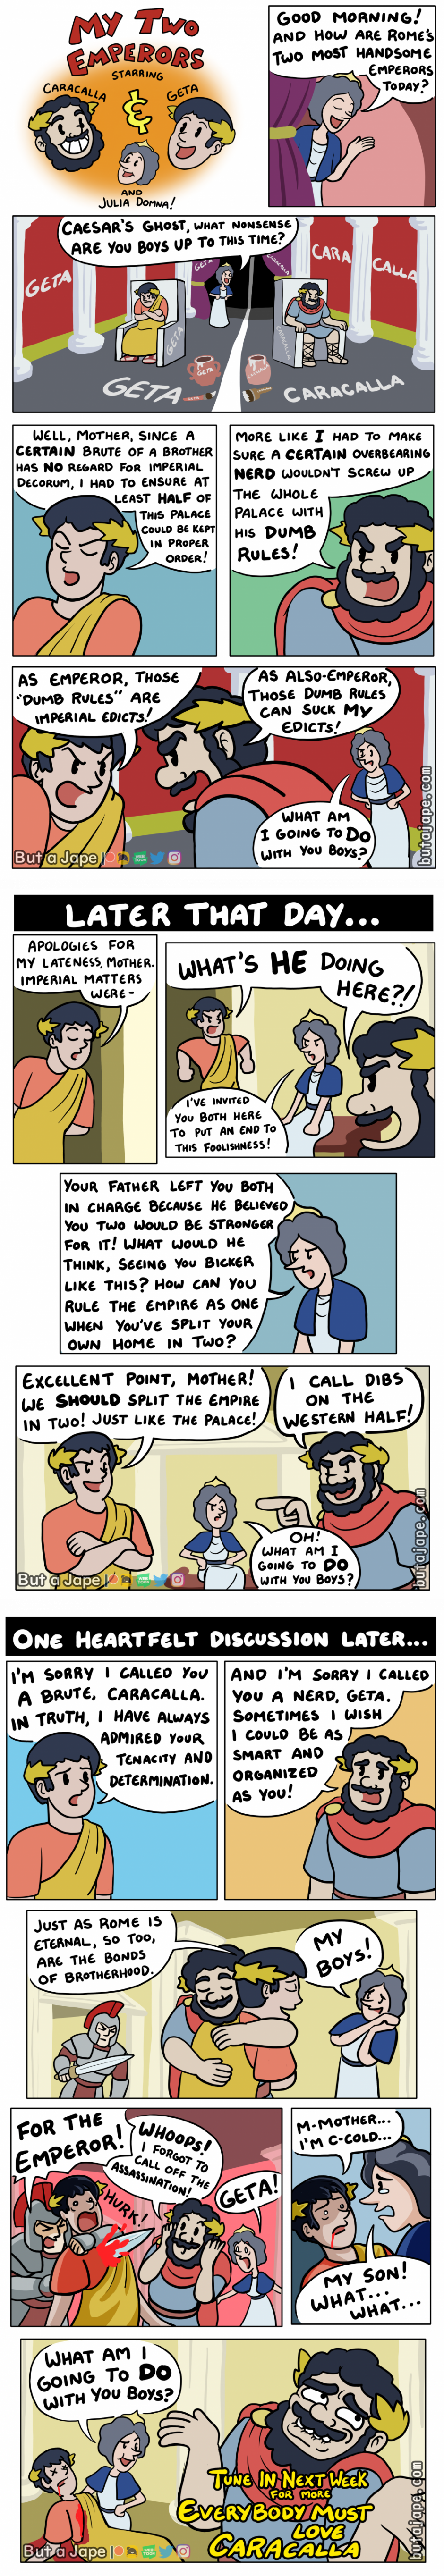 my two emperors comic